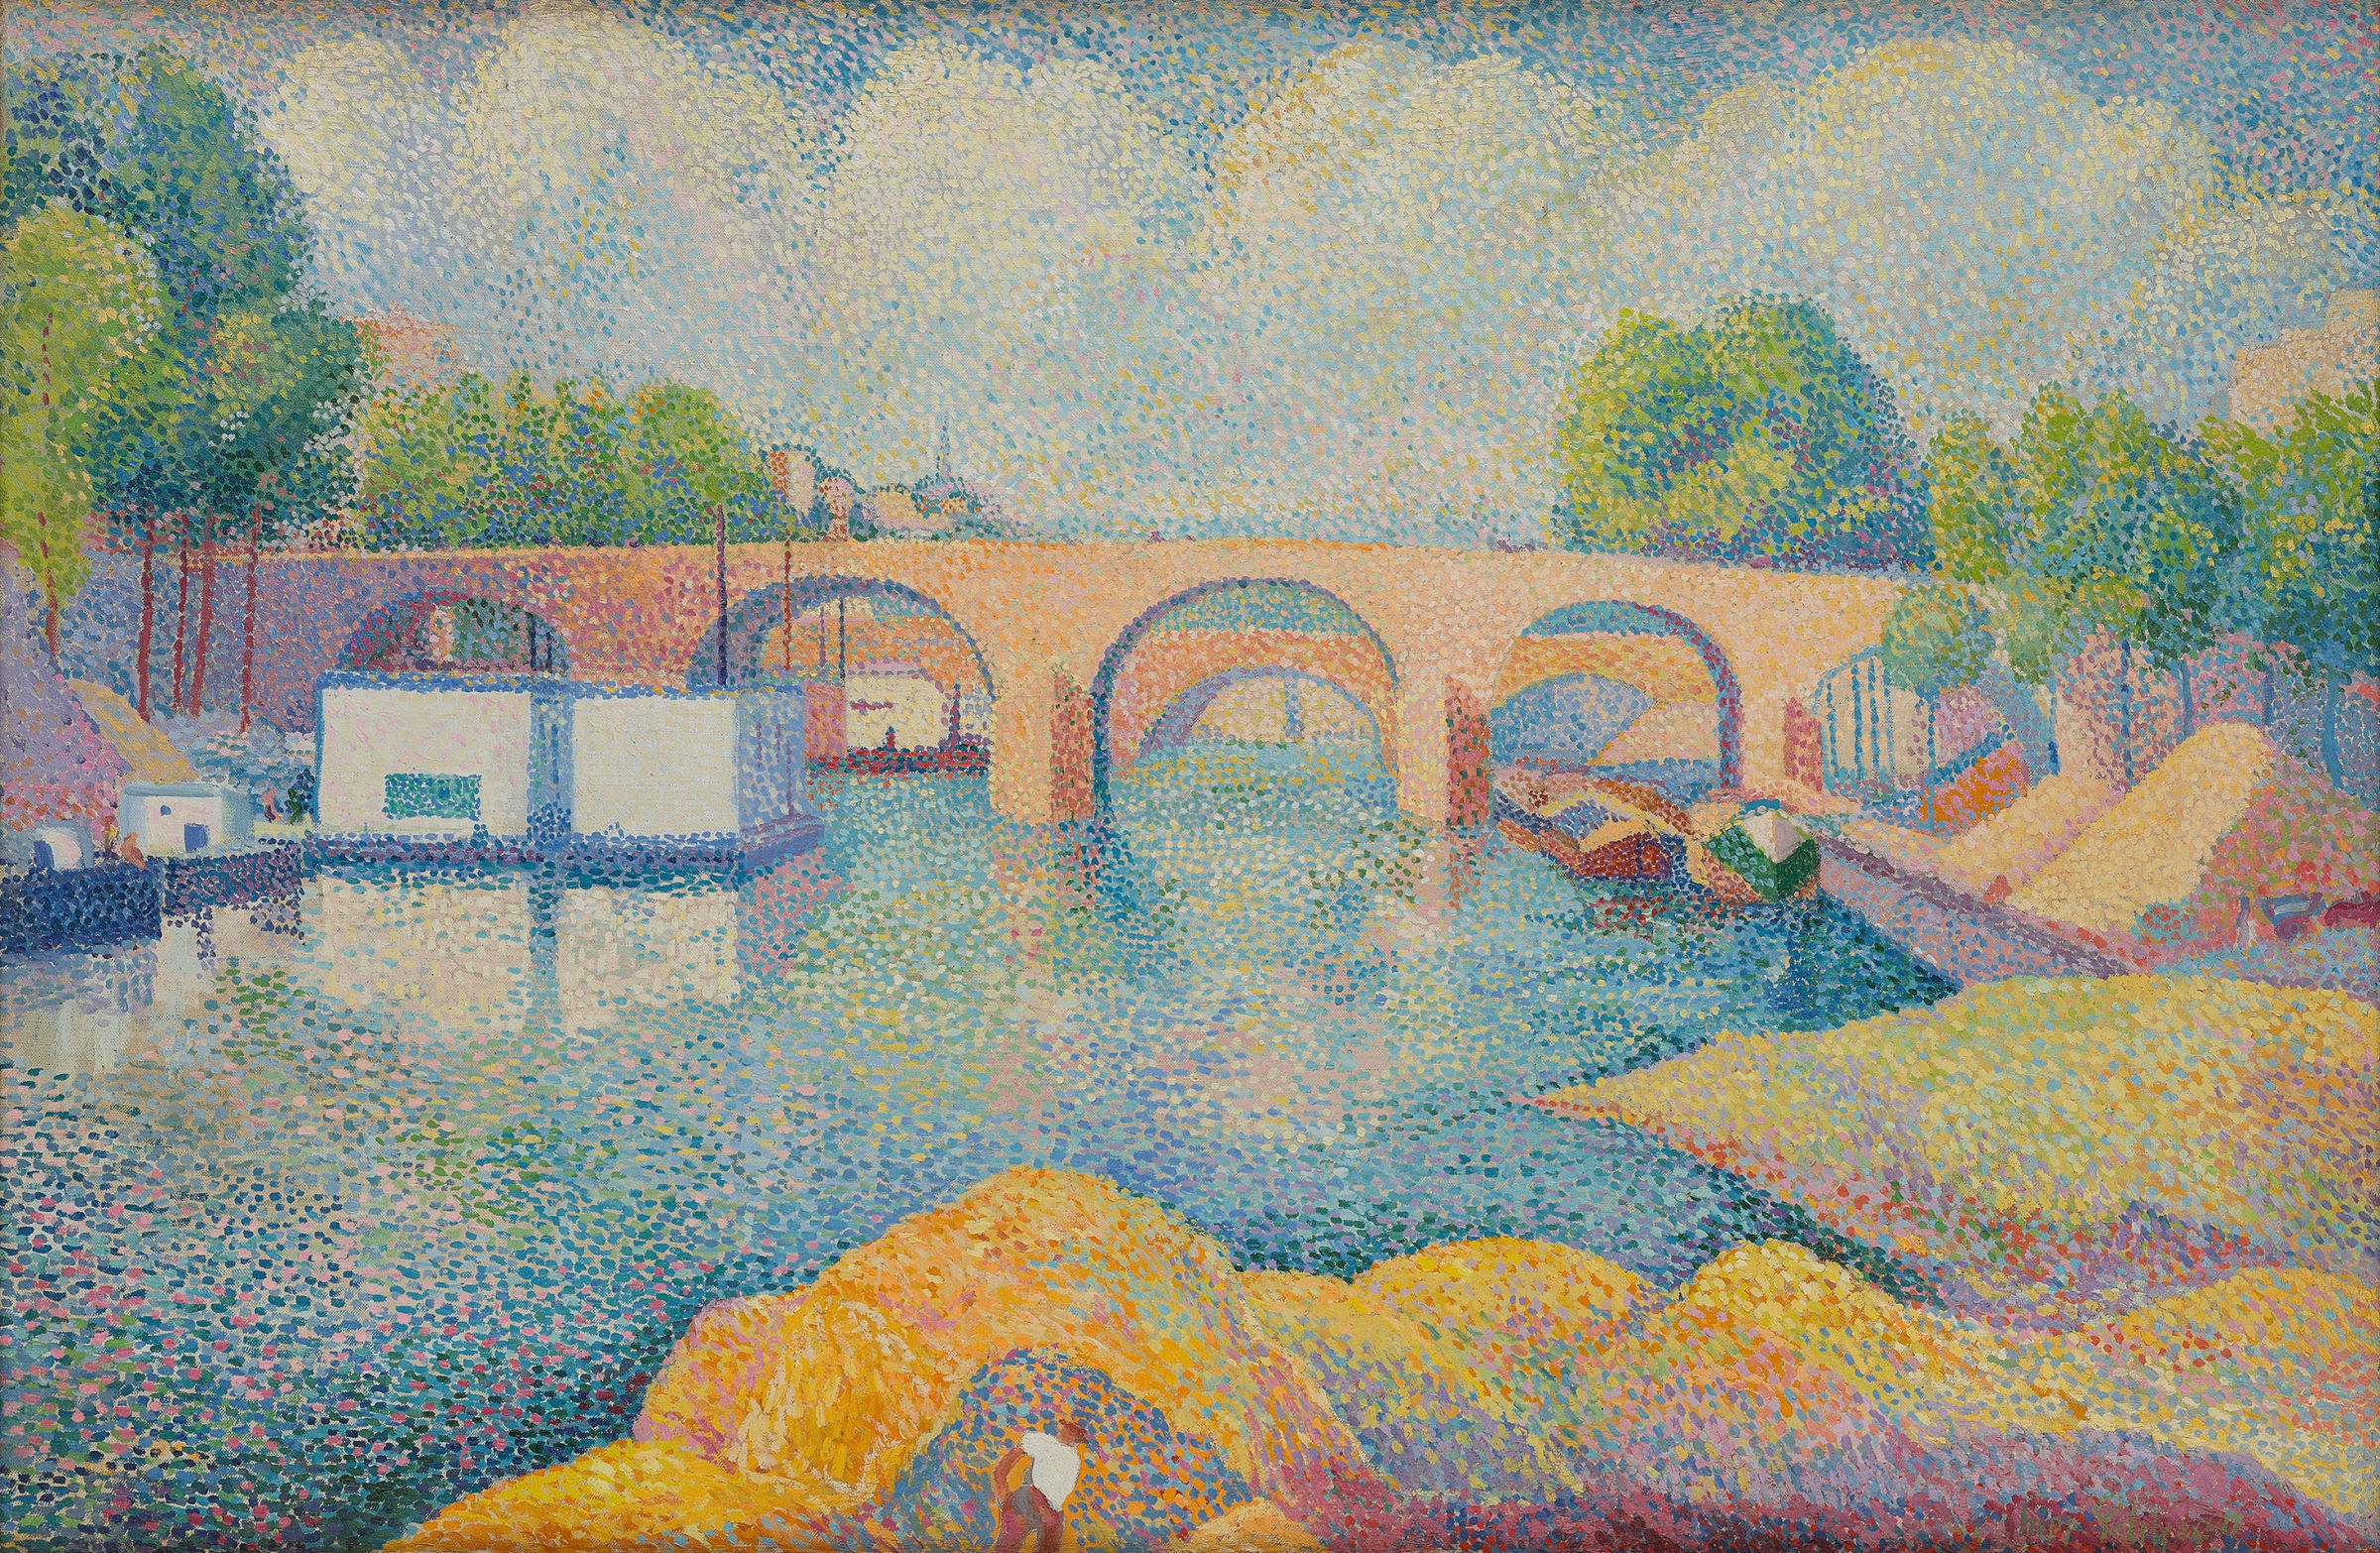 "<span class=""link fancybox-details-link""><a href=""/artists/70-hippolyte-petitjean/works/9449-hippolyte-petitjean-un-pont-paris-c.1890/"">View Detail Page</a></span><div class=""artist""><span class=""artist""><strong>Hippolyte Petitjean</strong></span></div>